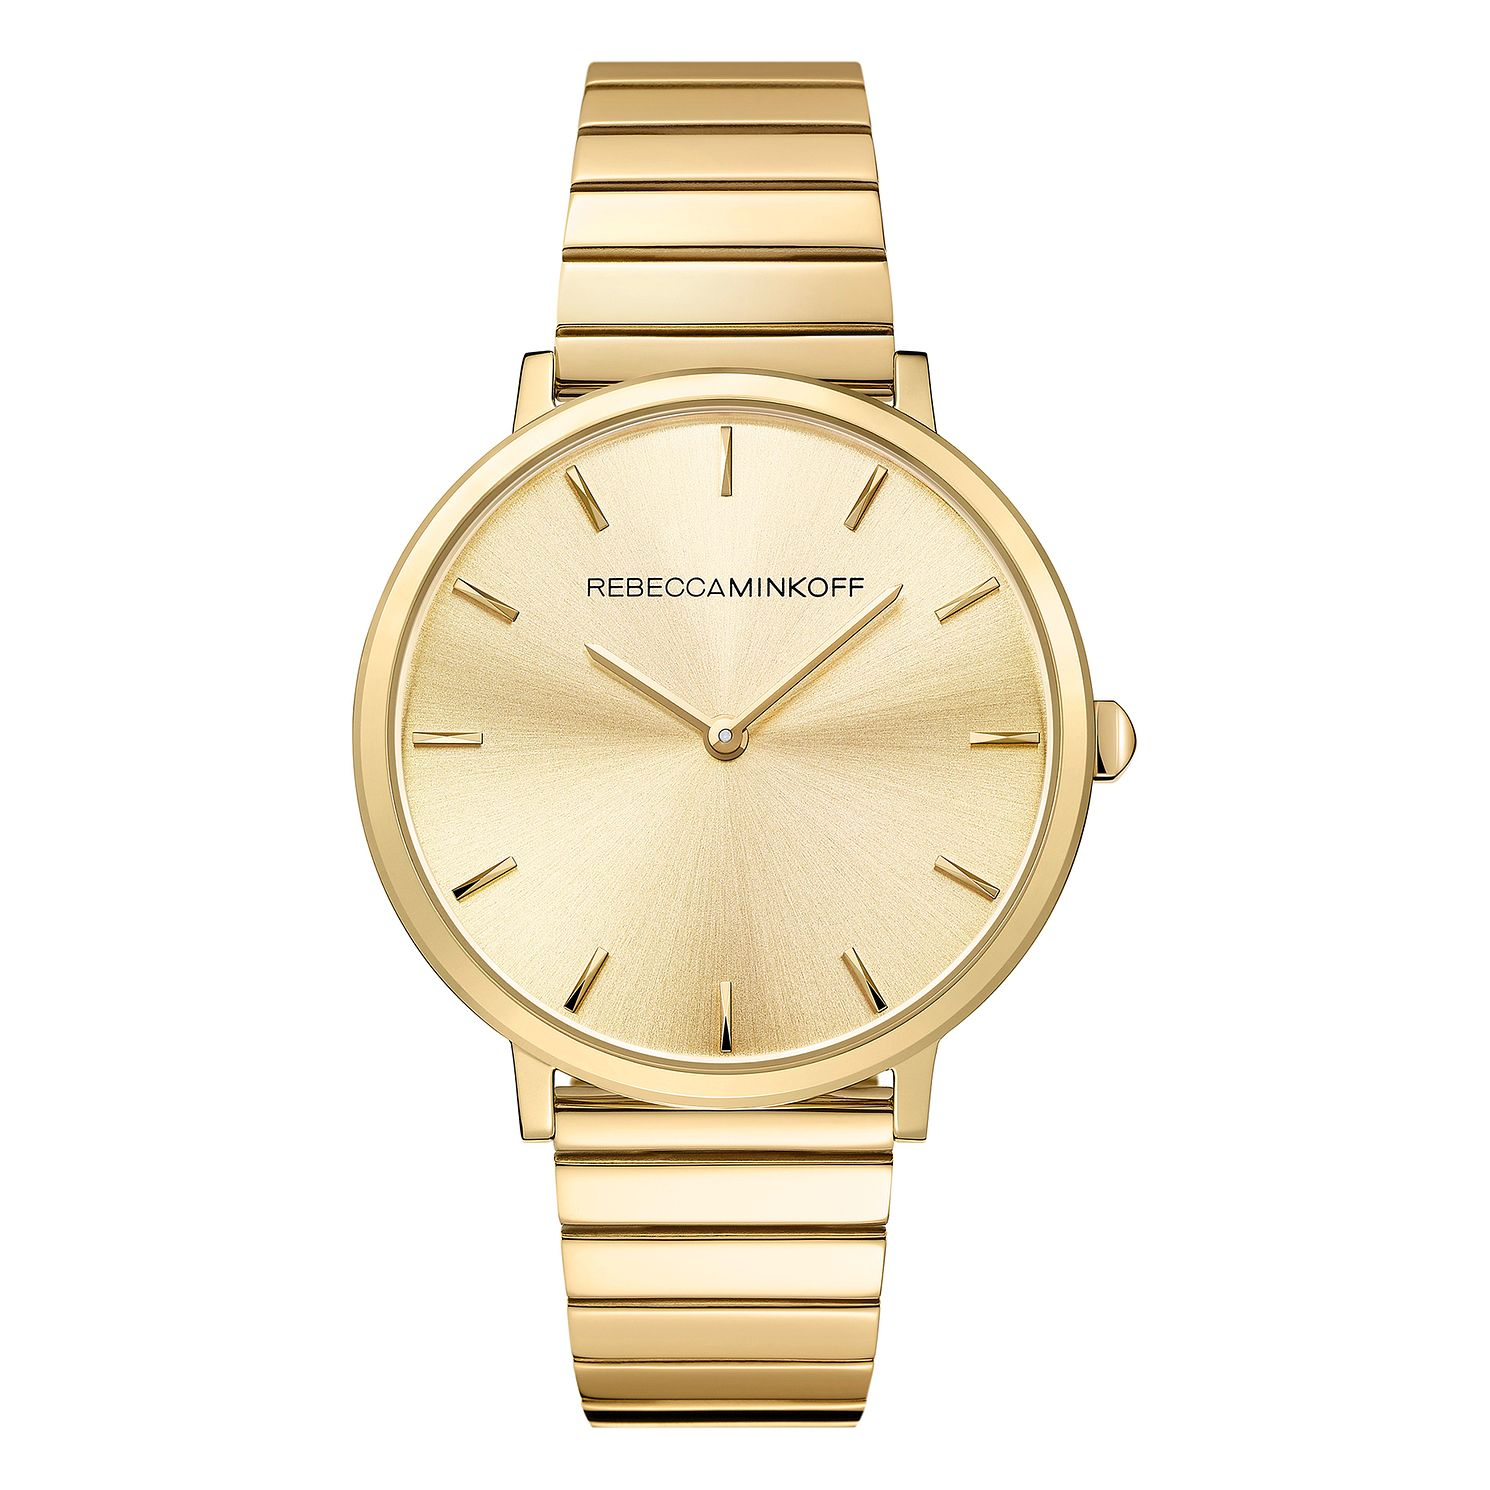 Rebecca Minkoff Major Ladies' Gold Tone Bracelet Watch - Product number 9745408